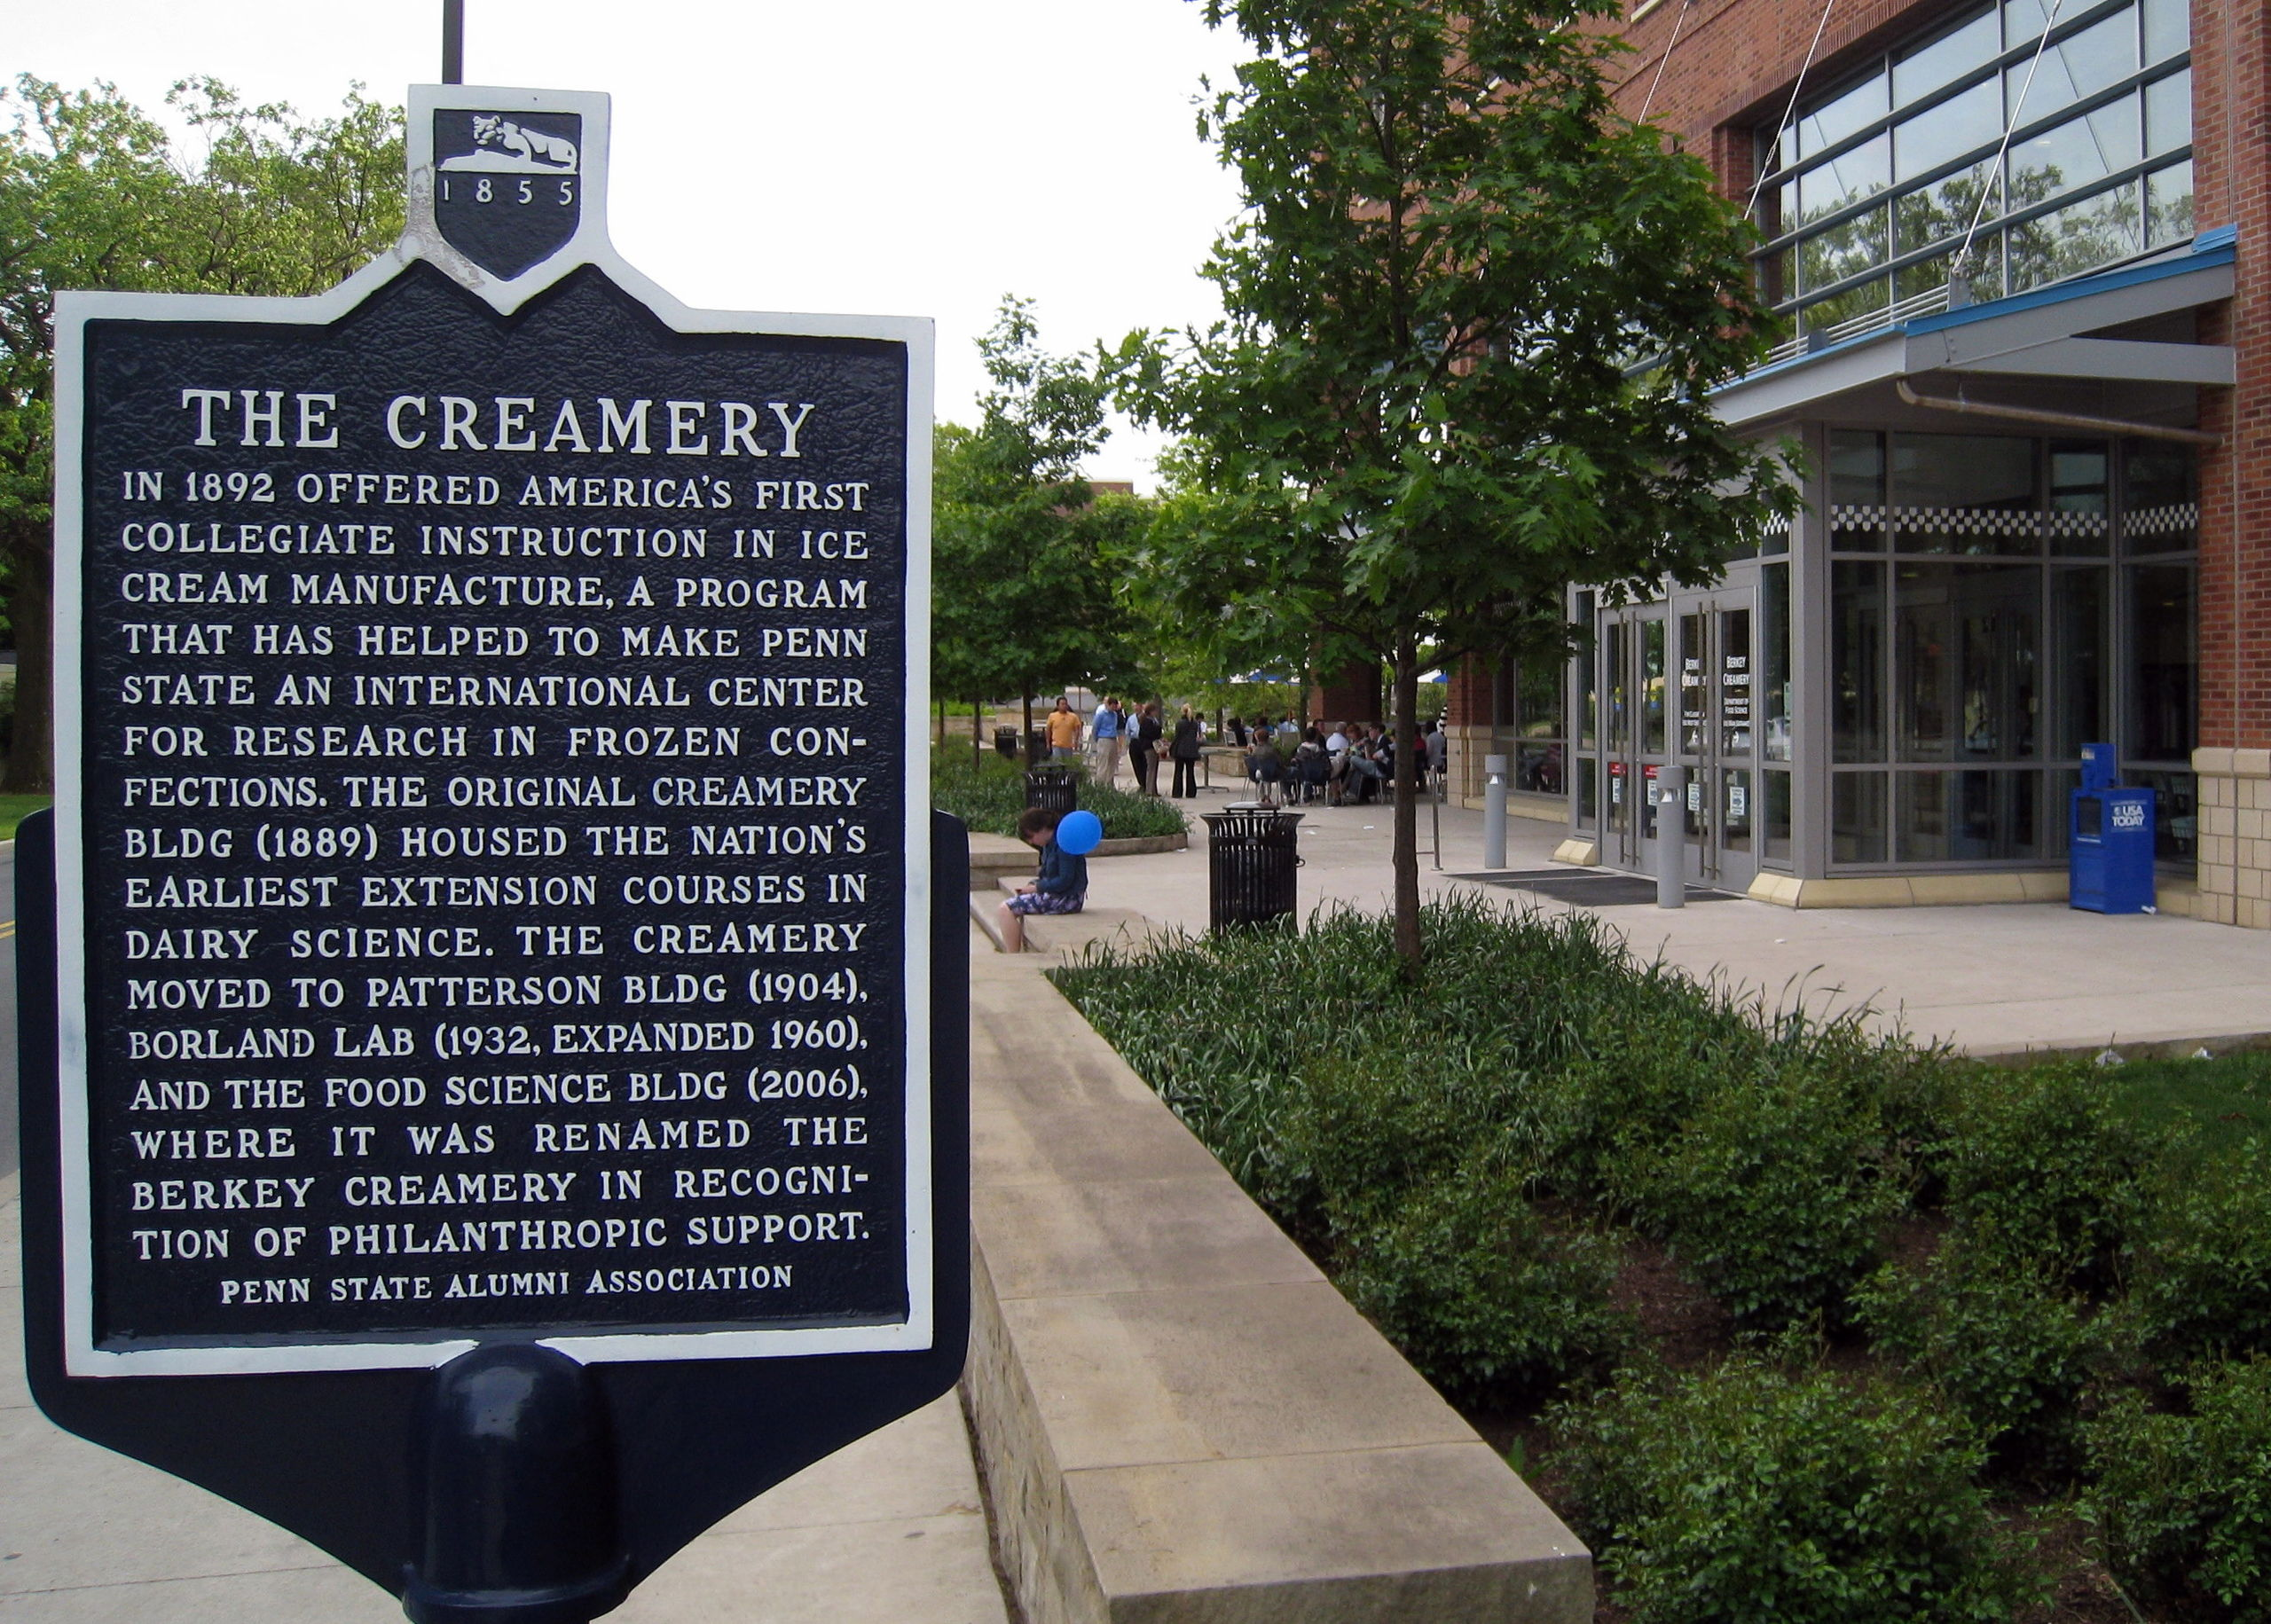 The Creamery at Penn State